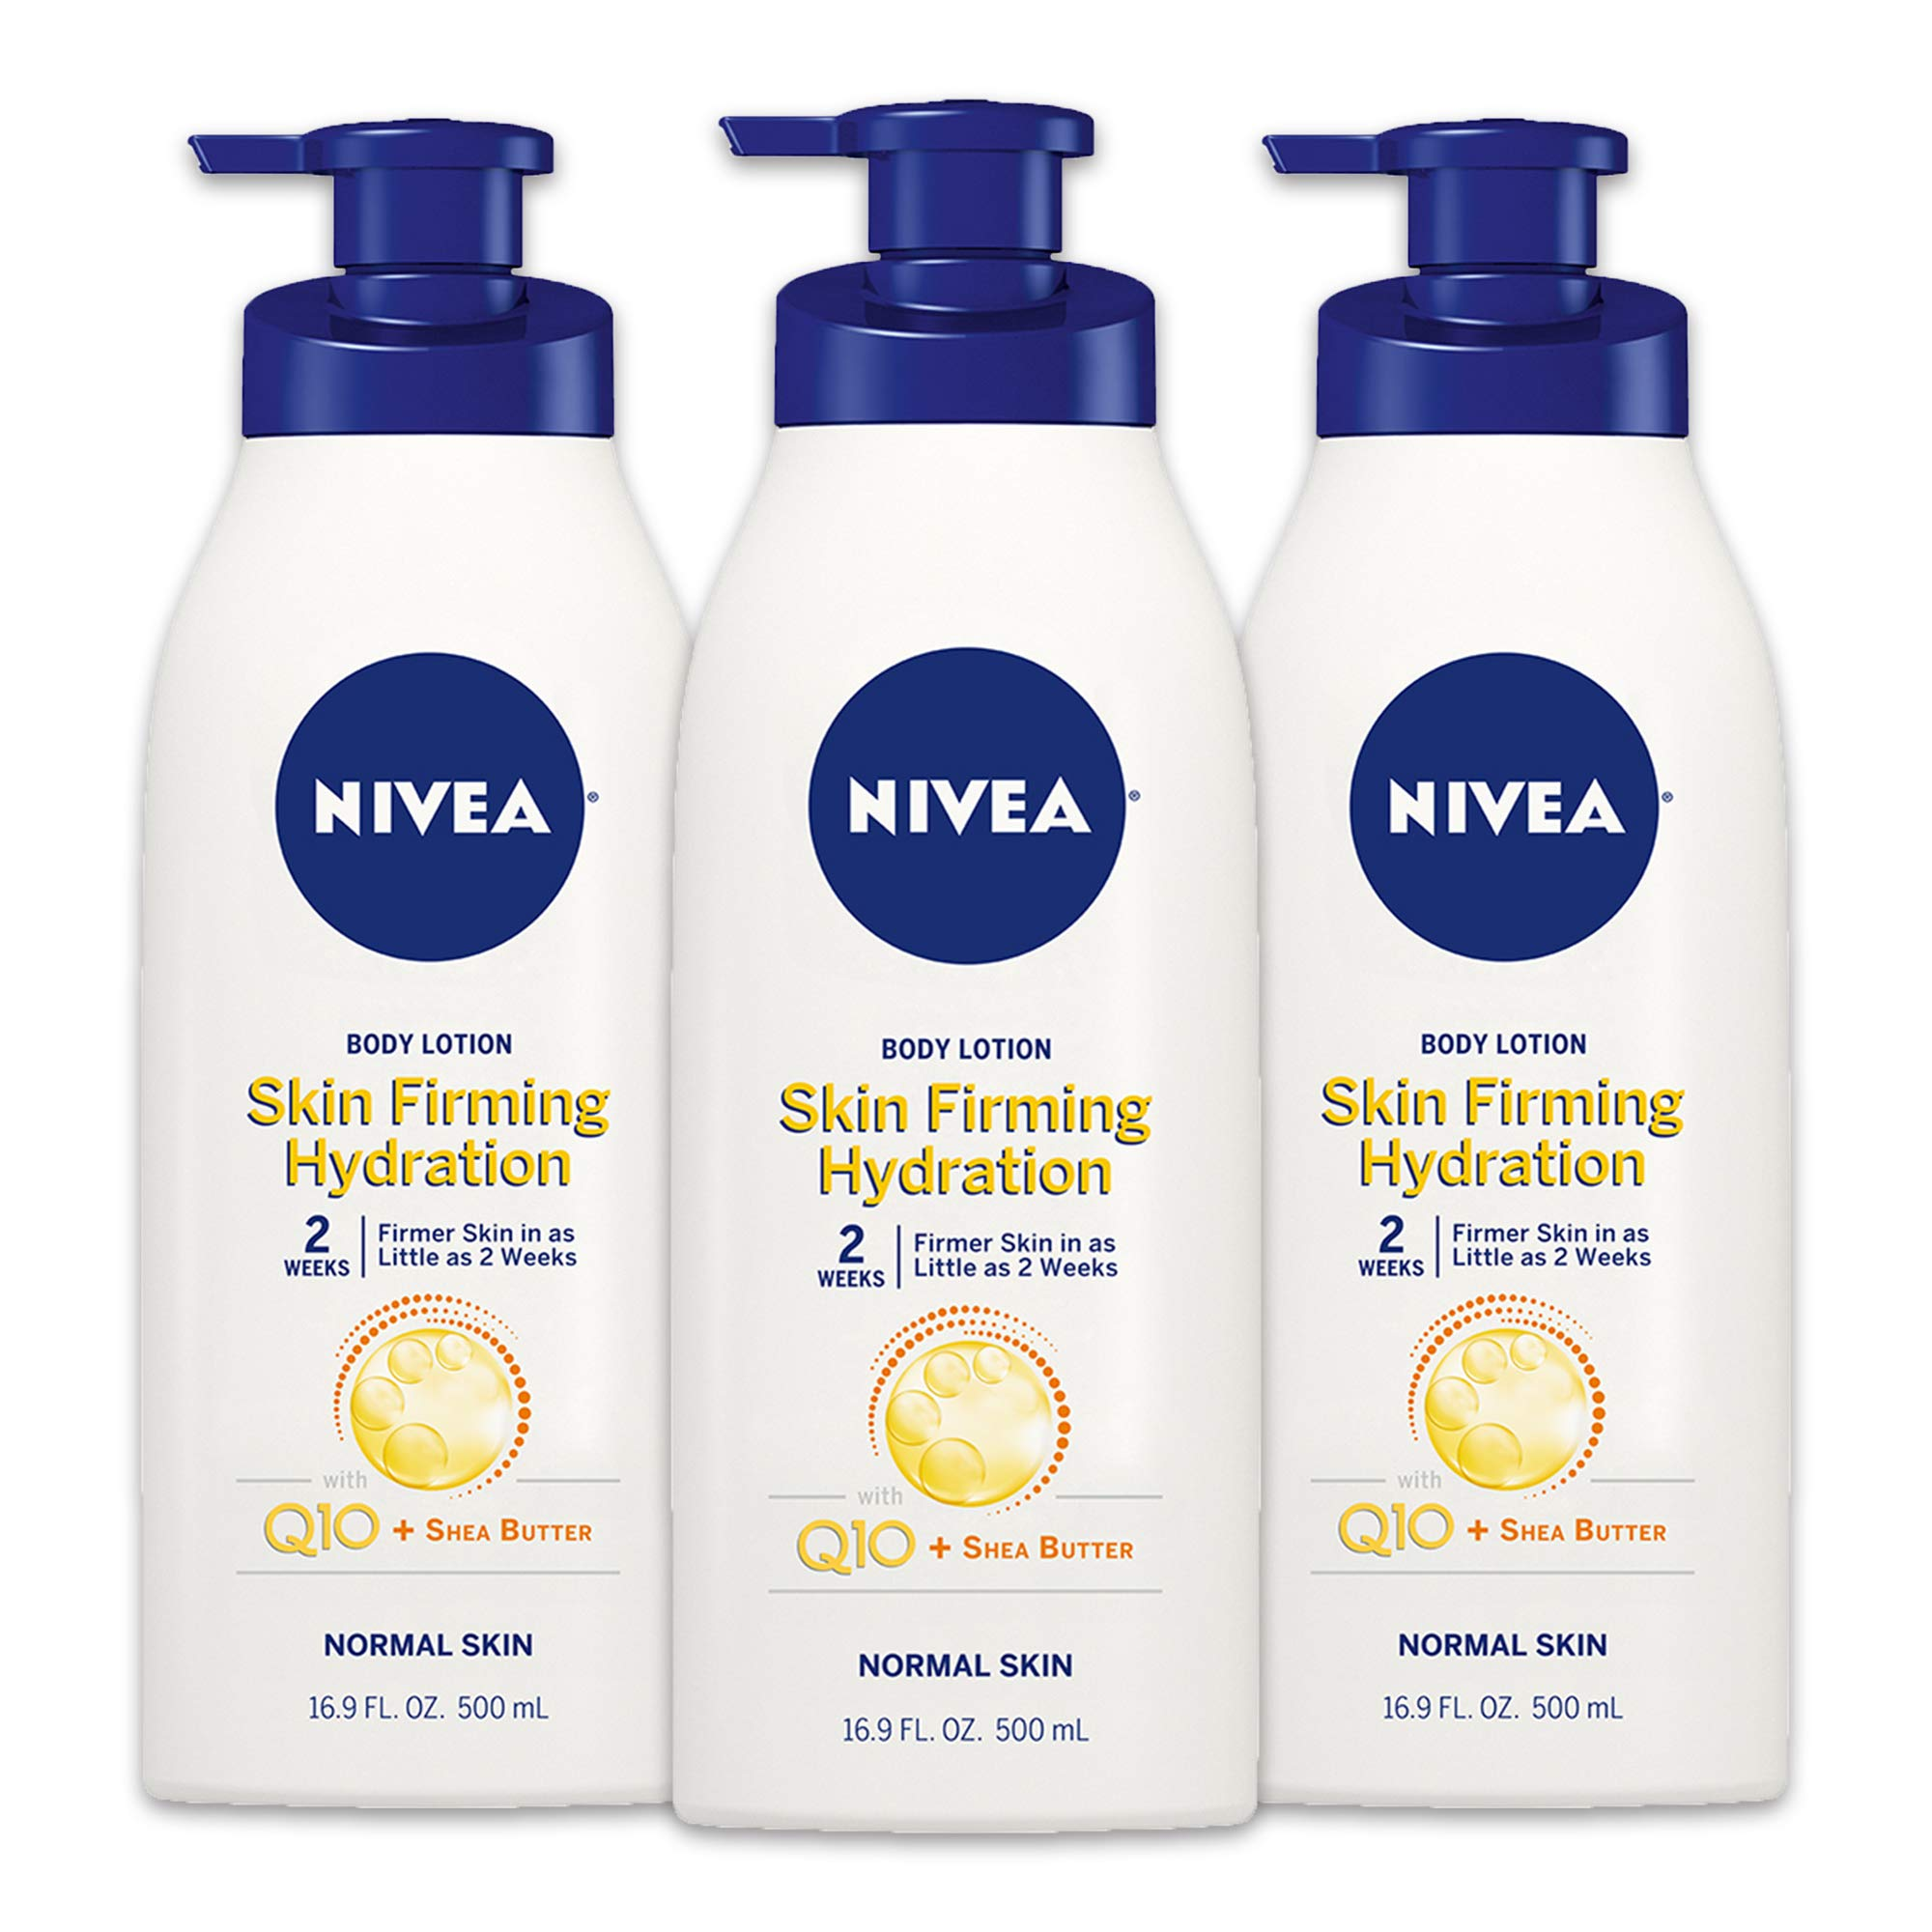 NIVEA Skin Firming Hydrating Body Lotion - With Q10 For Normal Skin - 16.9 oz. Pump Bottle (Pack of 3) by Nivea